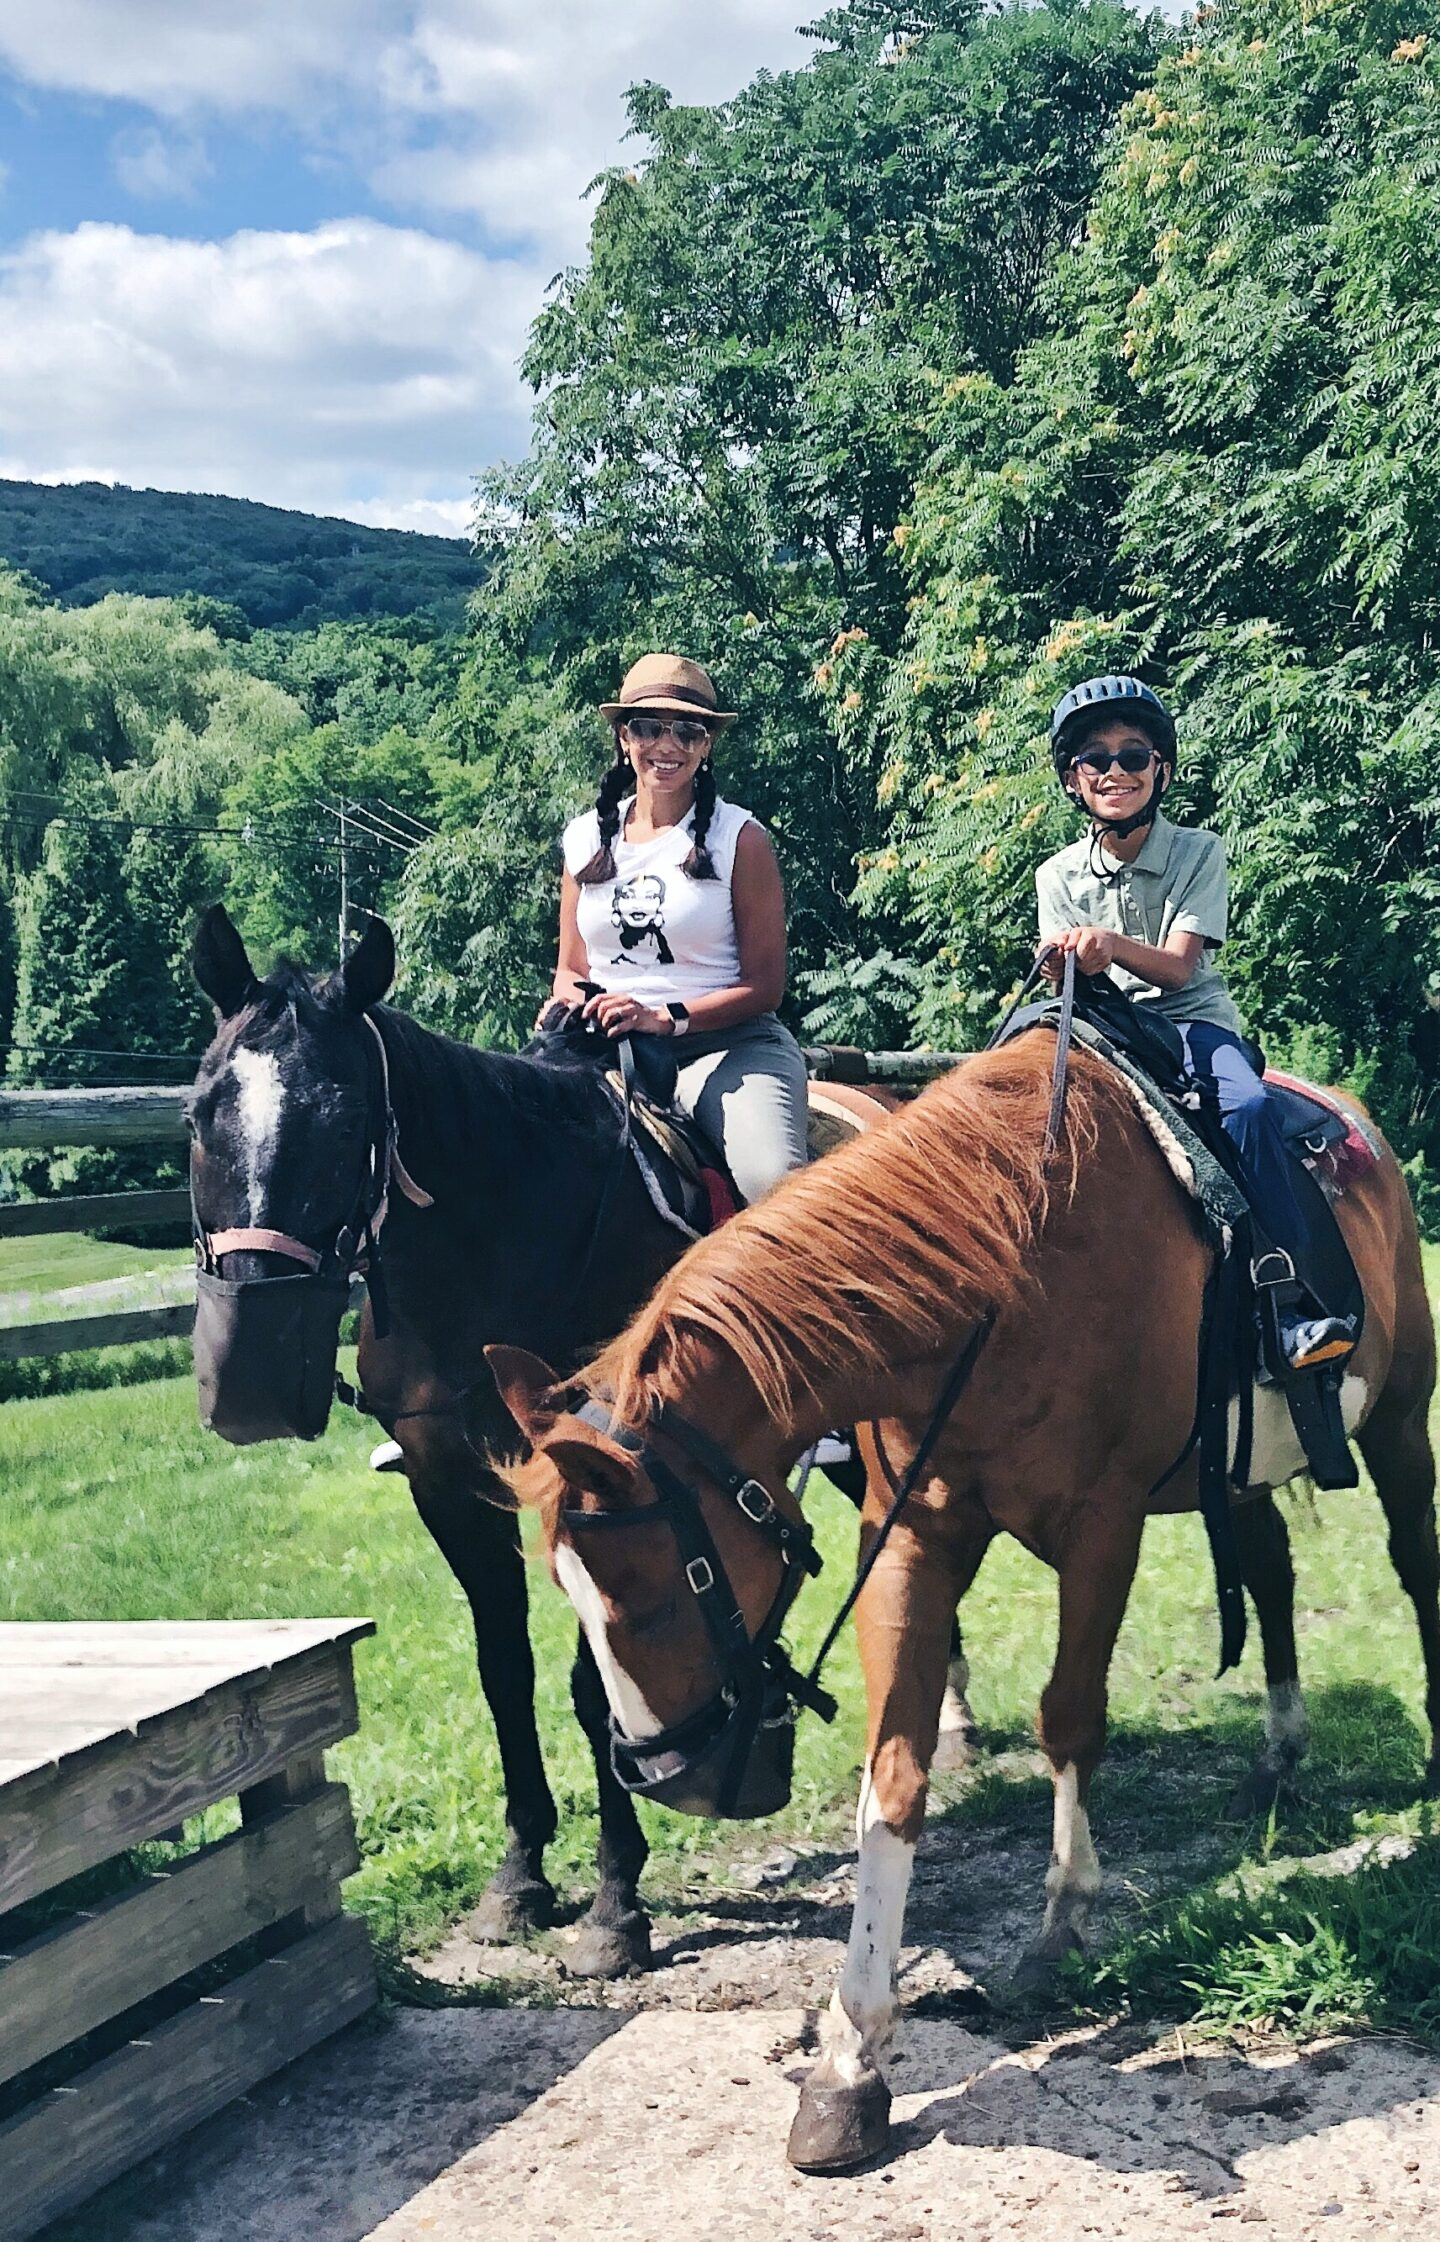 Mother and Son horseback riding